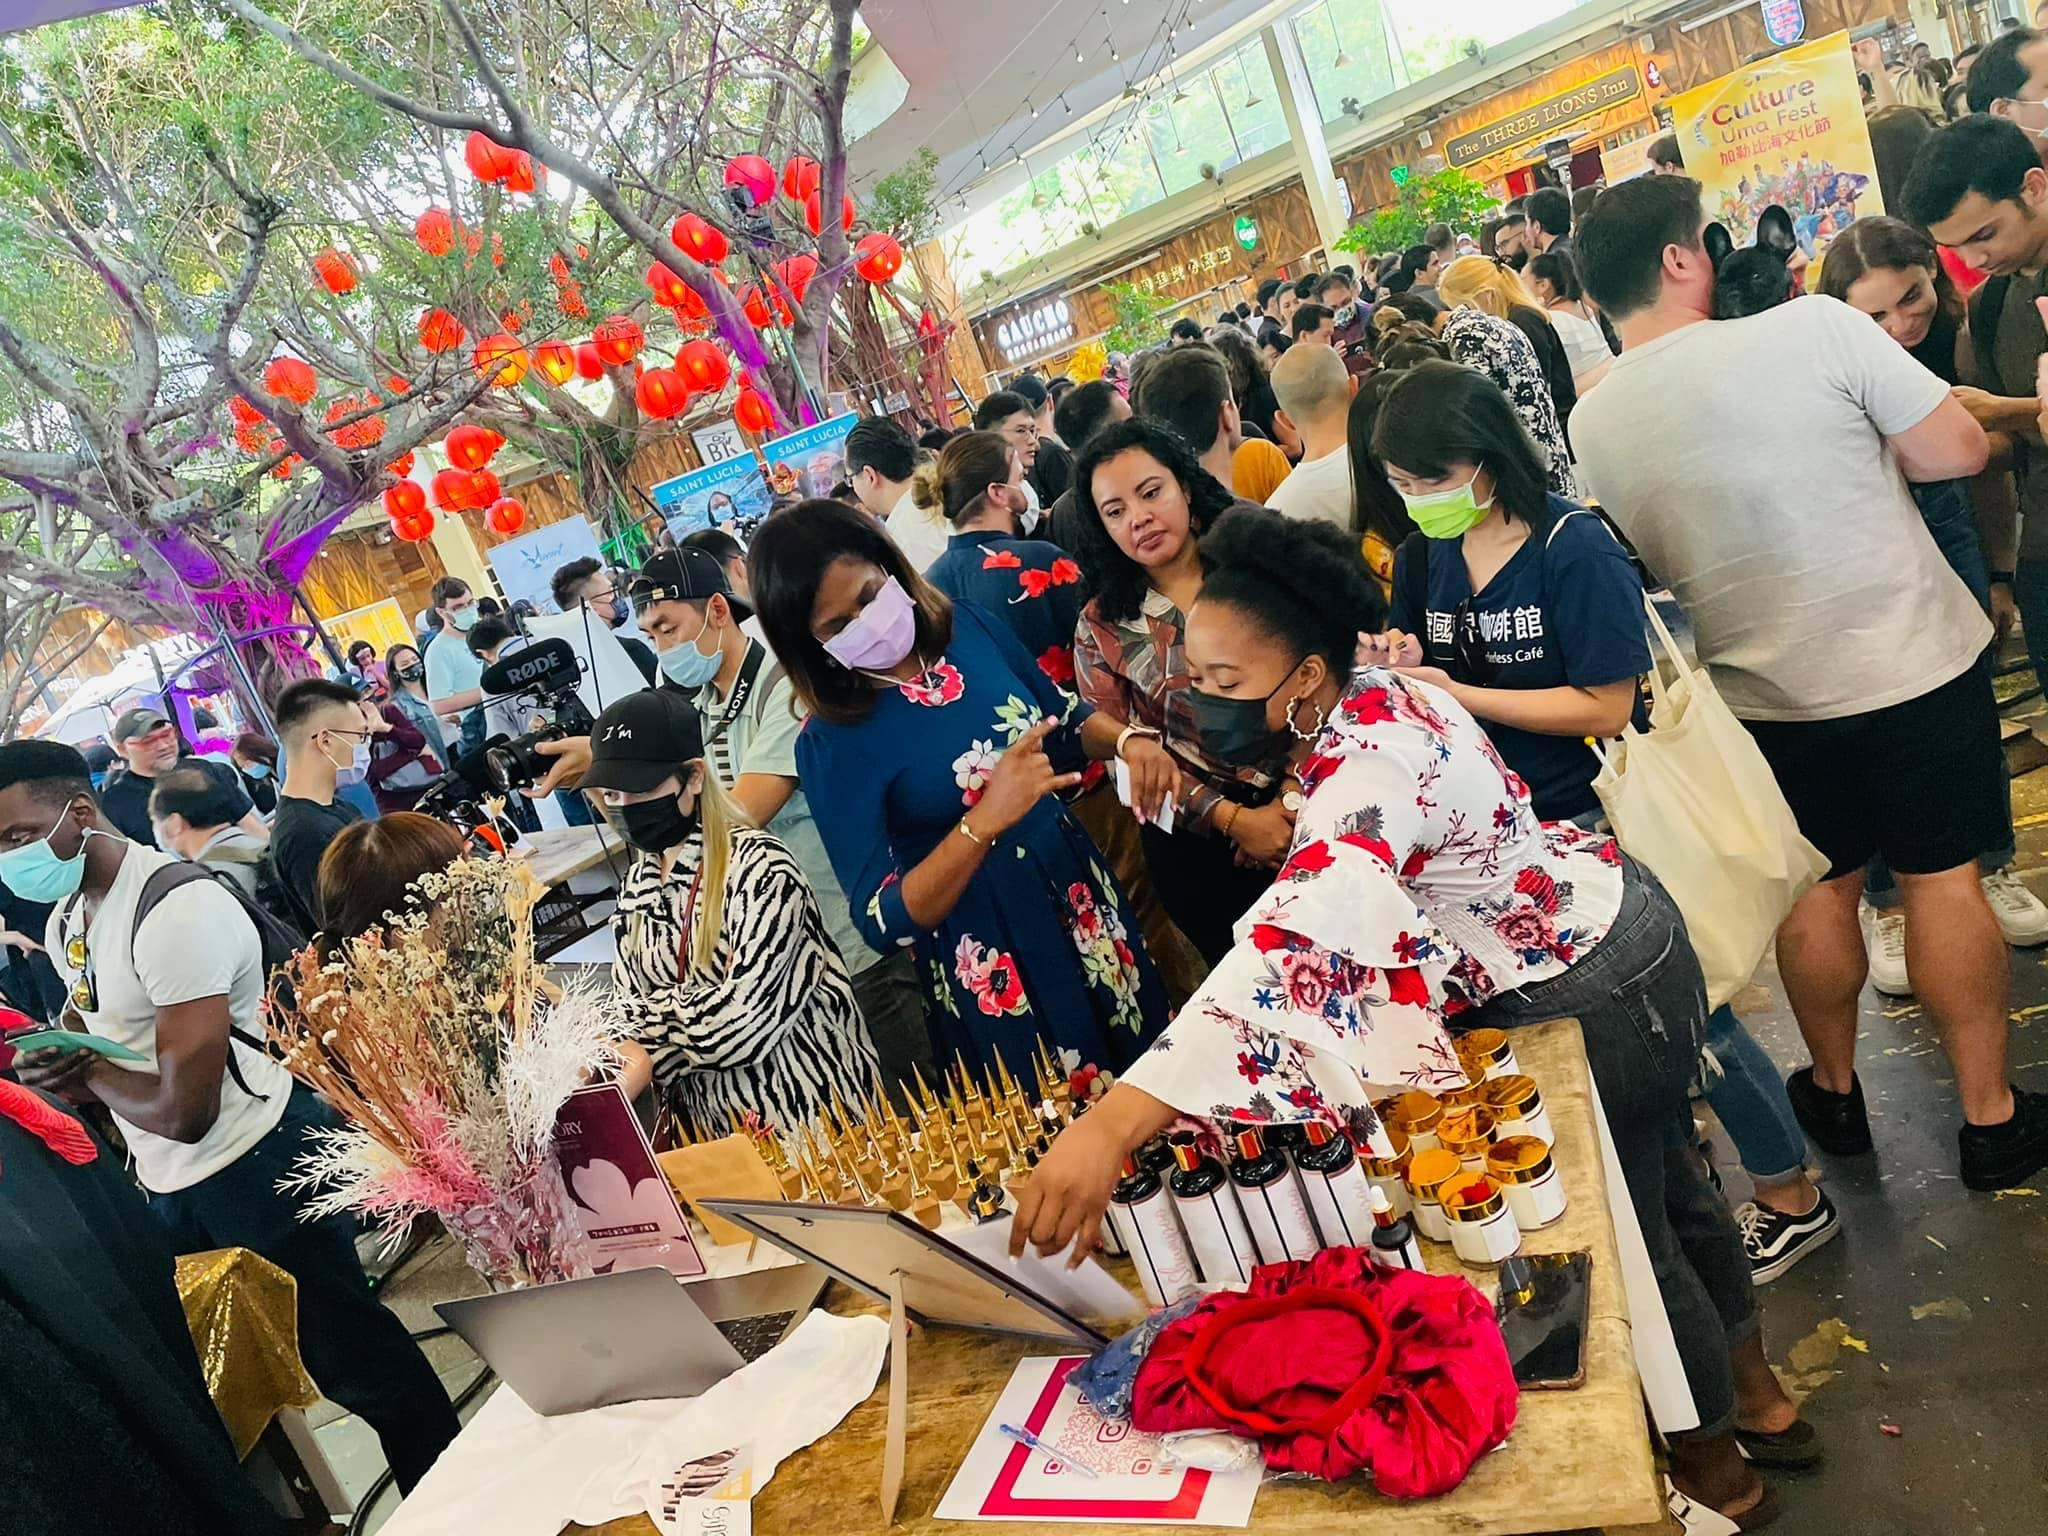 Belizean Brings Culture and History to Taiwan